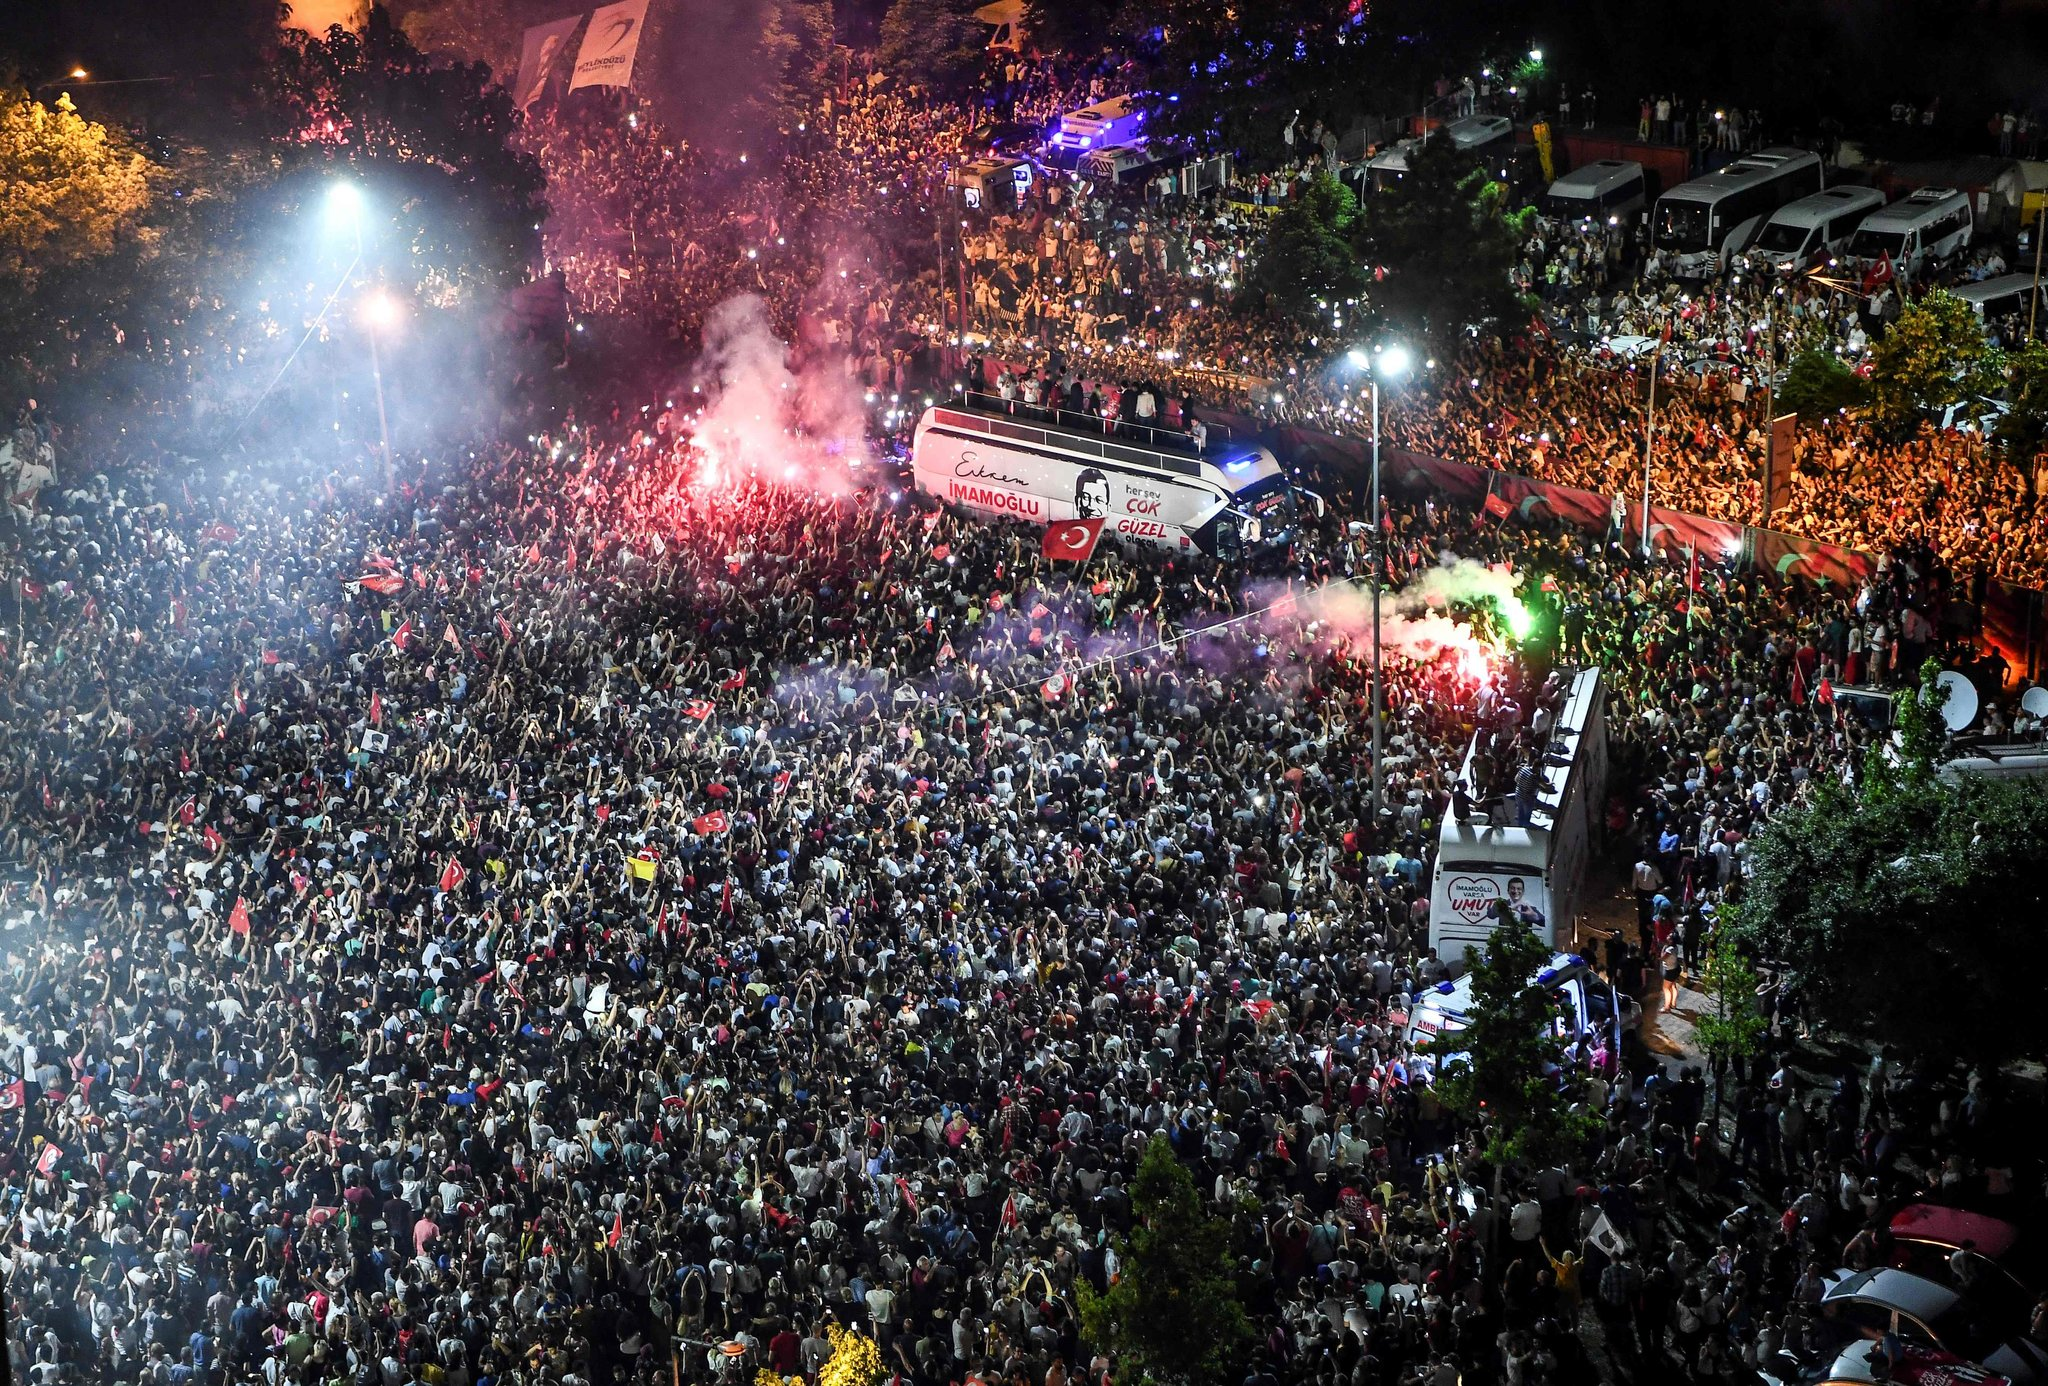 Thousands gathered to celebrate after the opposition candidate, Ekrem Imamoglu, emerged as winner of the repeat mayoral election in Istanbul on Sunday. Credit Agence France-Presse — Getty Images